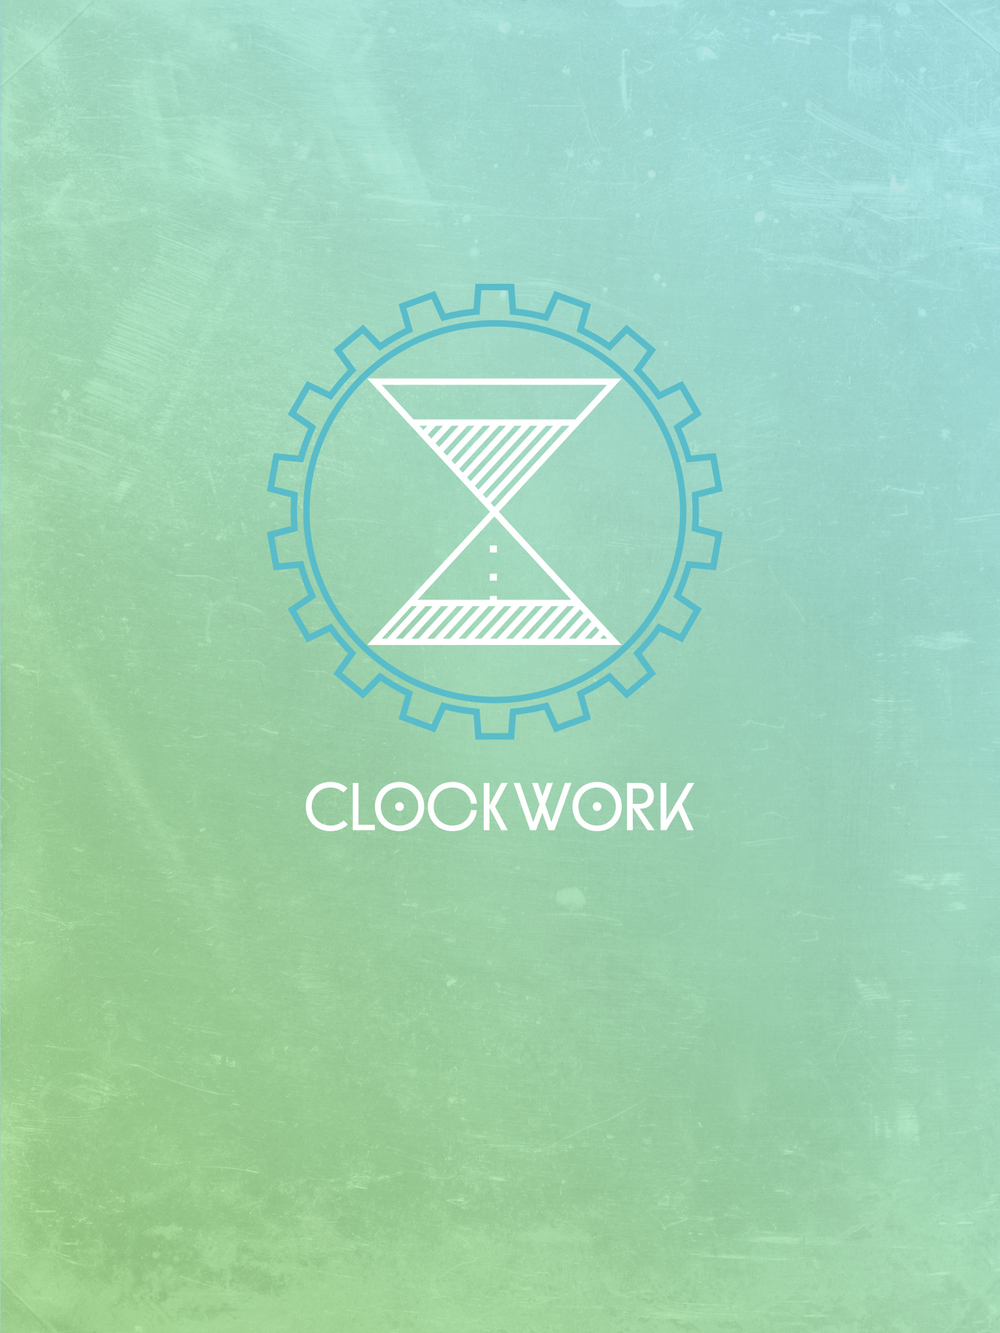 ClockWork_splash.jpg